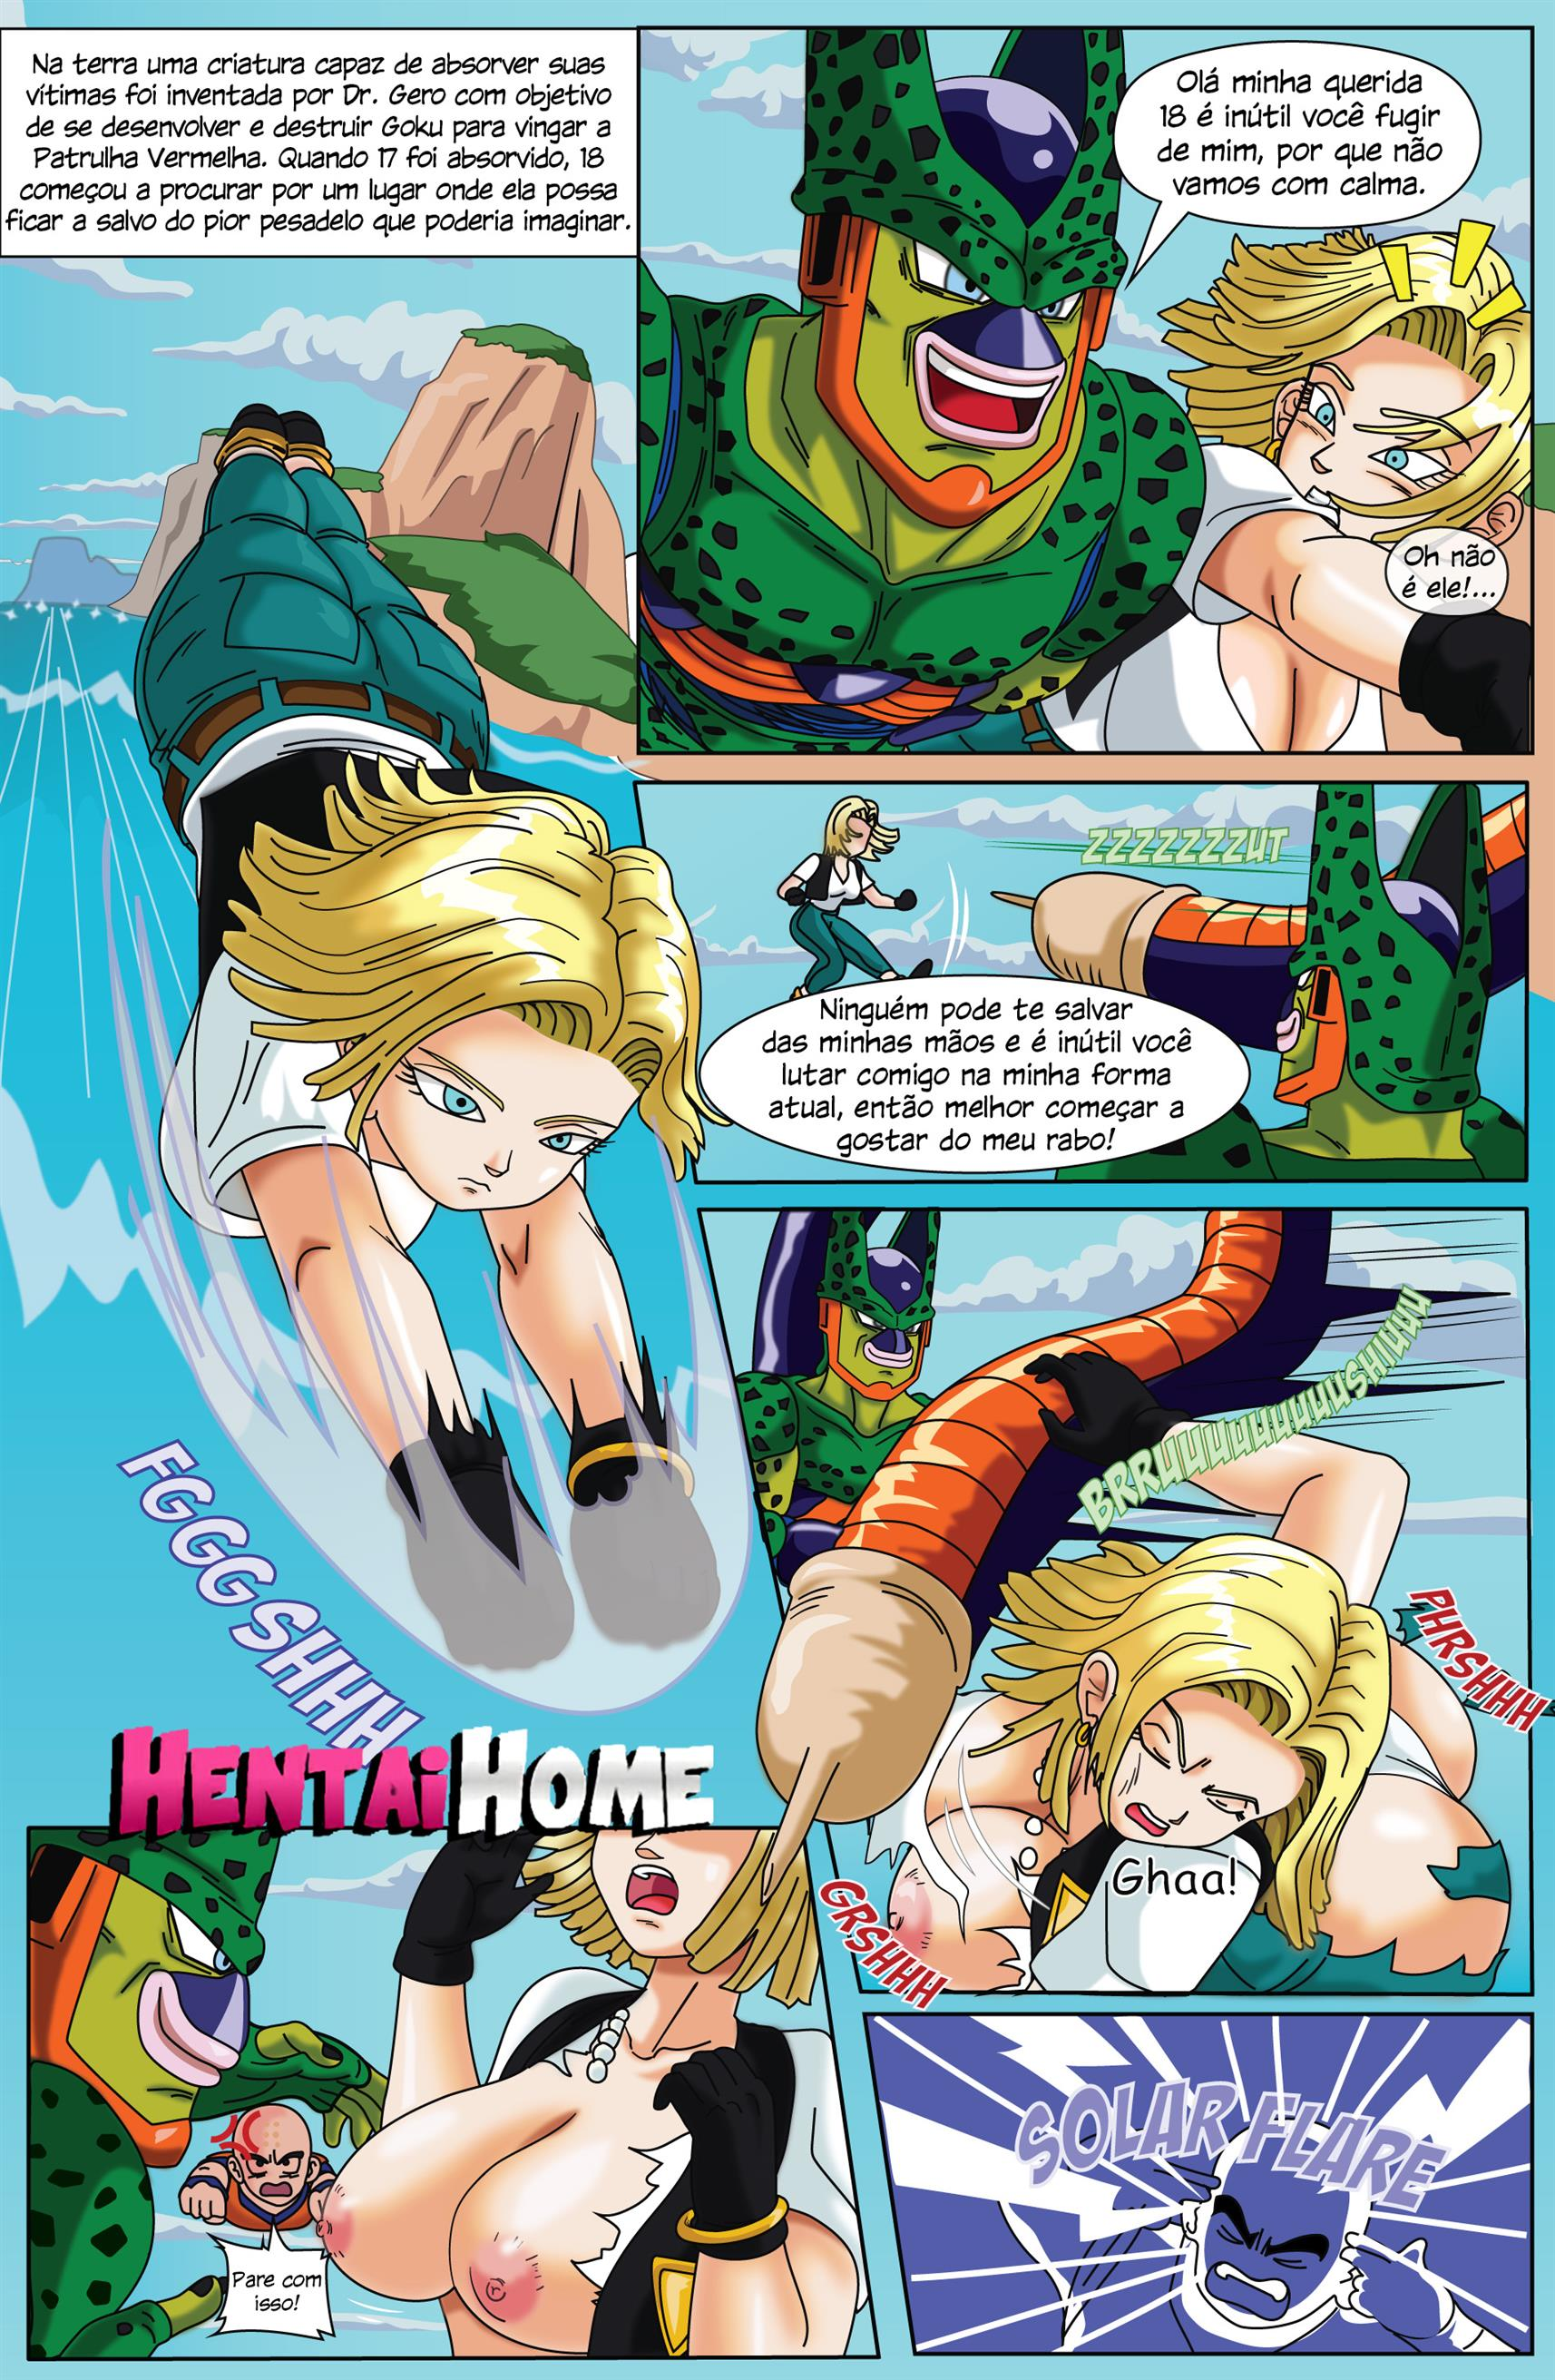 Cell-absorve-Android-18-2